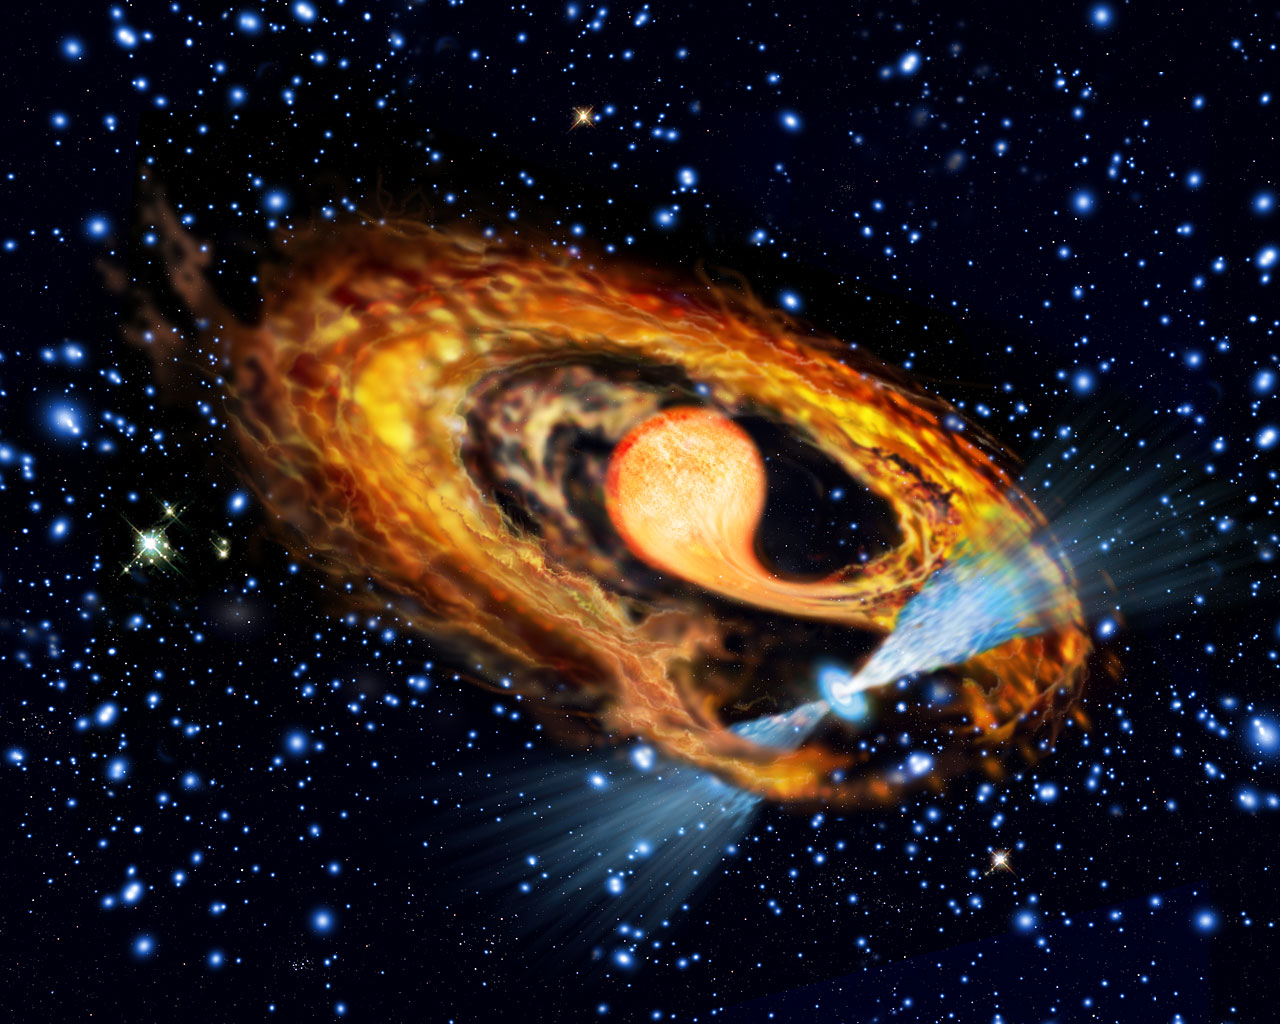 Artist's impression of millisecond pulsar and companion